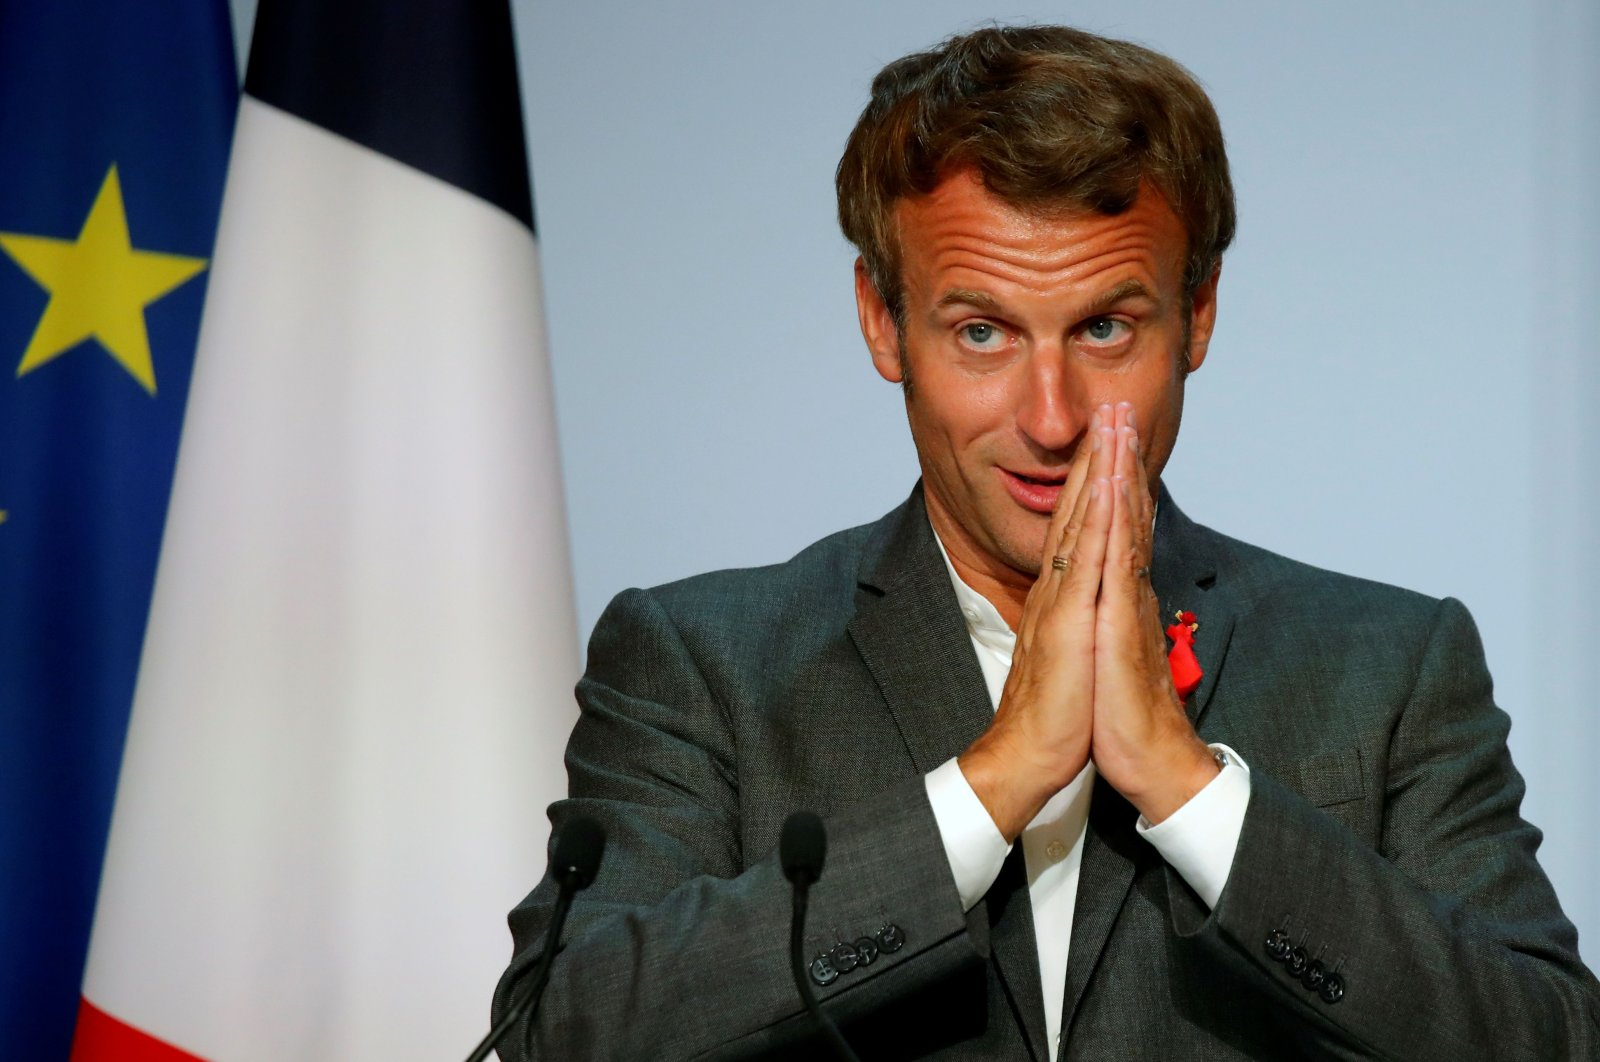 French President Emmanuel Macron gestures as he delivers an address to French tech startups at the closing ceremony of the National Council of French Tech Capitals and Communities (CNCC) at Elysee Palace in Paris on Sept. 14, 2020. (AFP Photo)